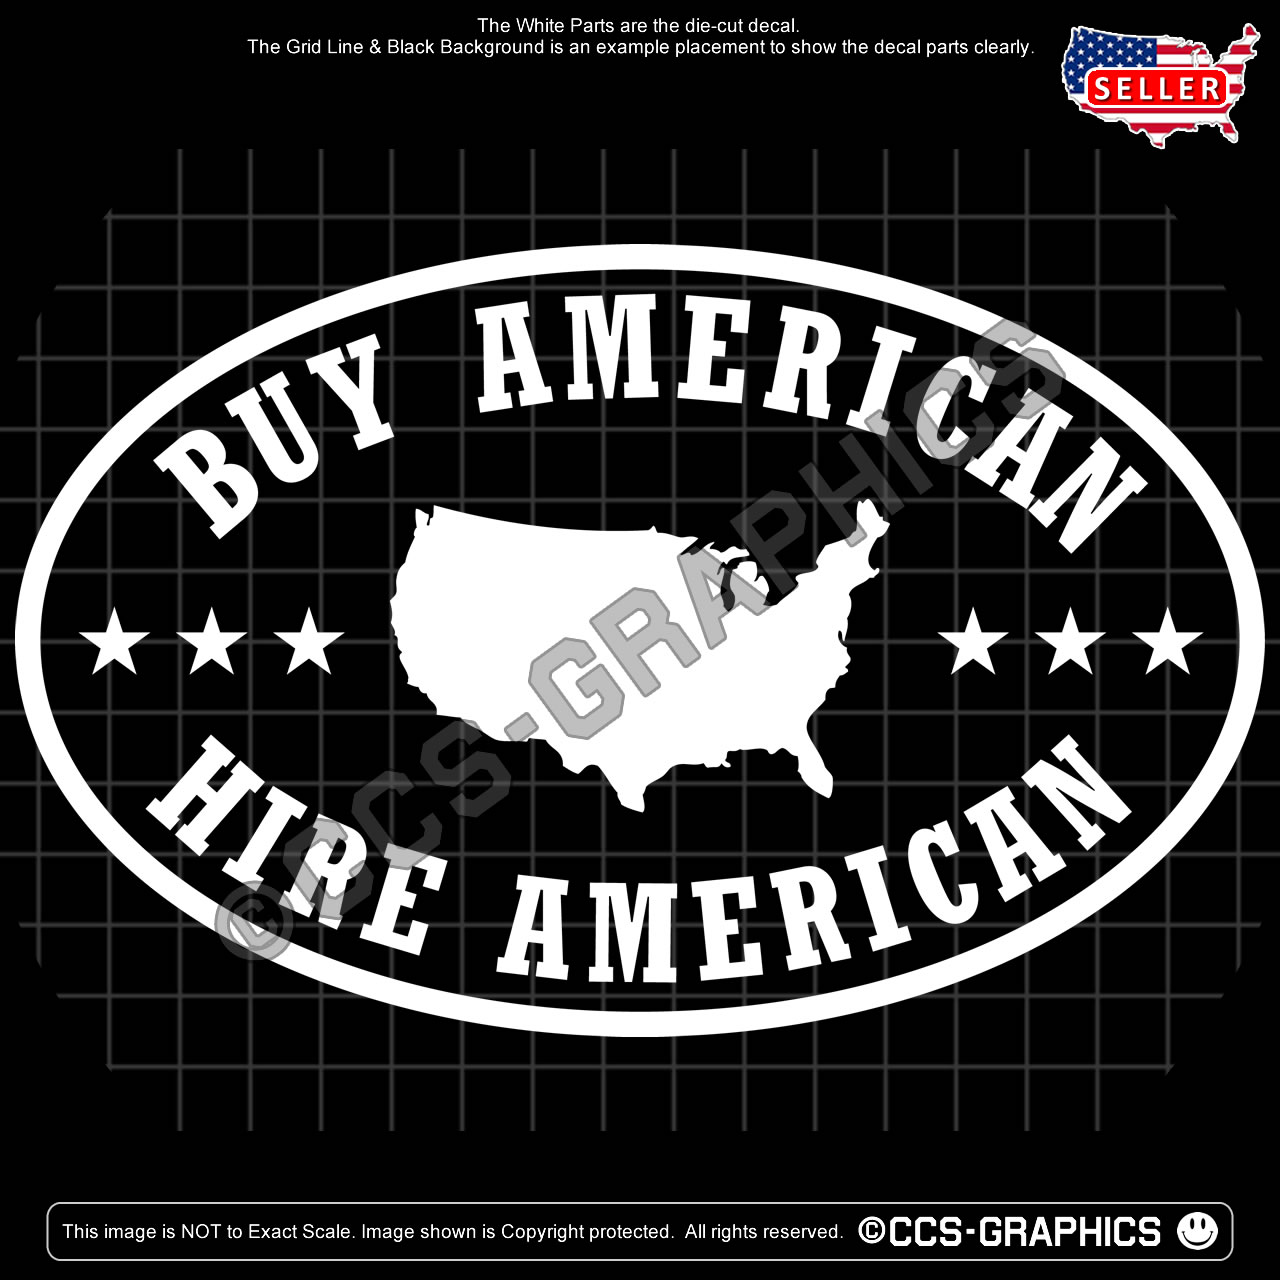 Buy american hire american decal 3 sizes free shipping maga ccs graphics